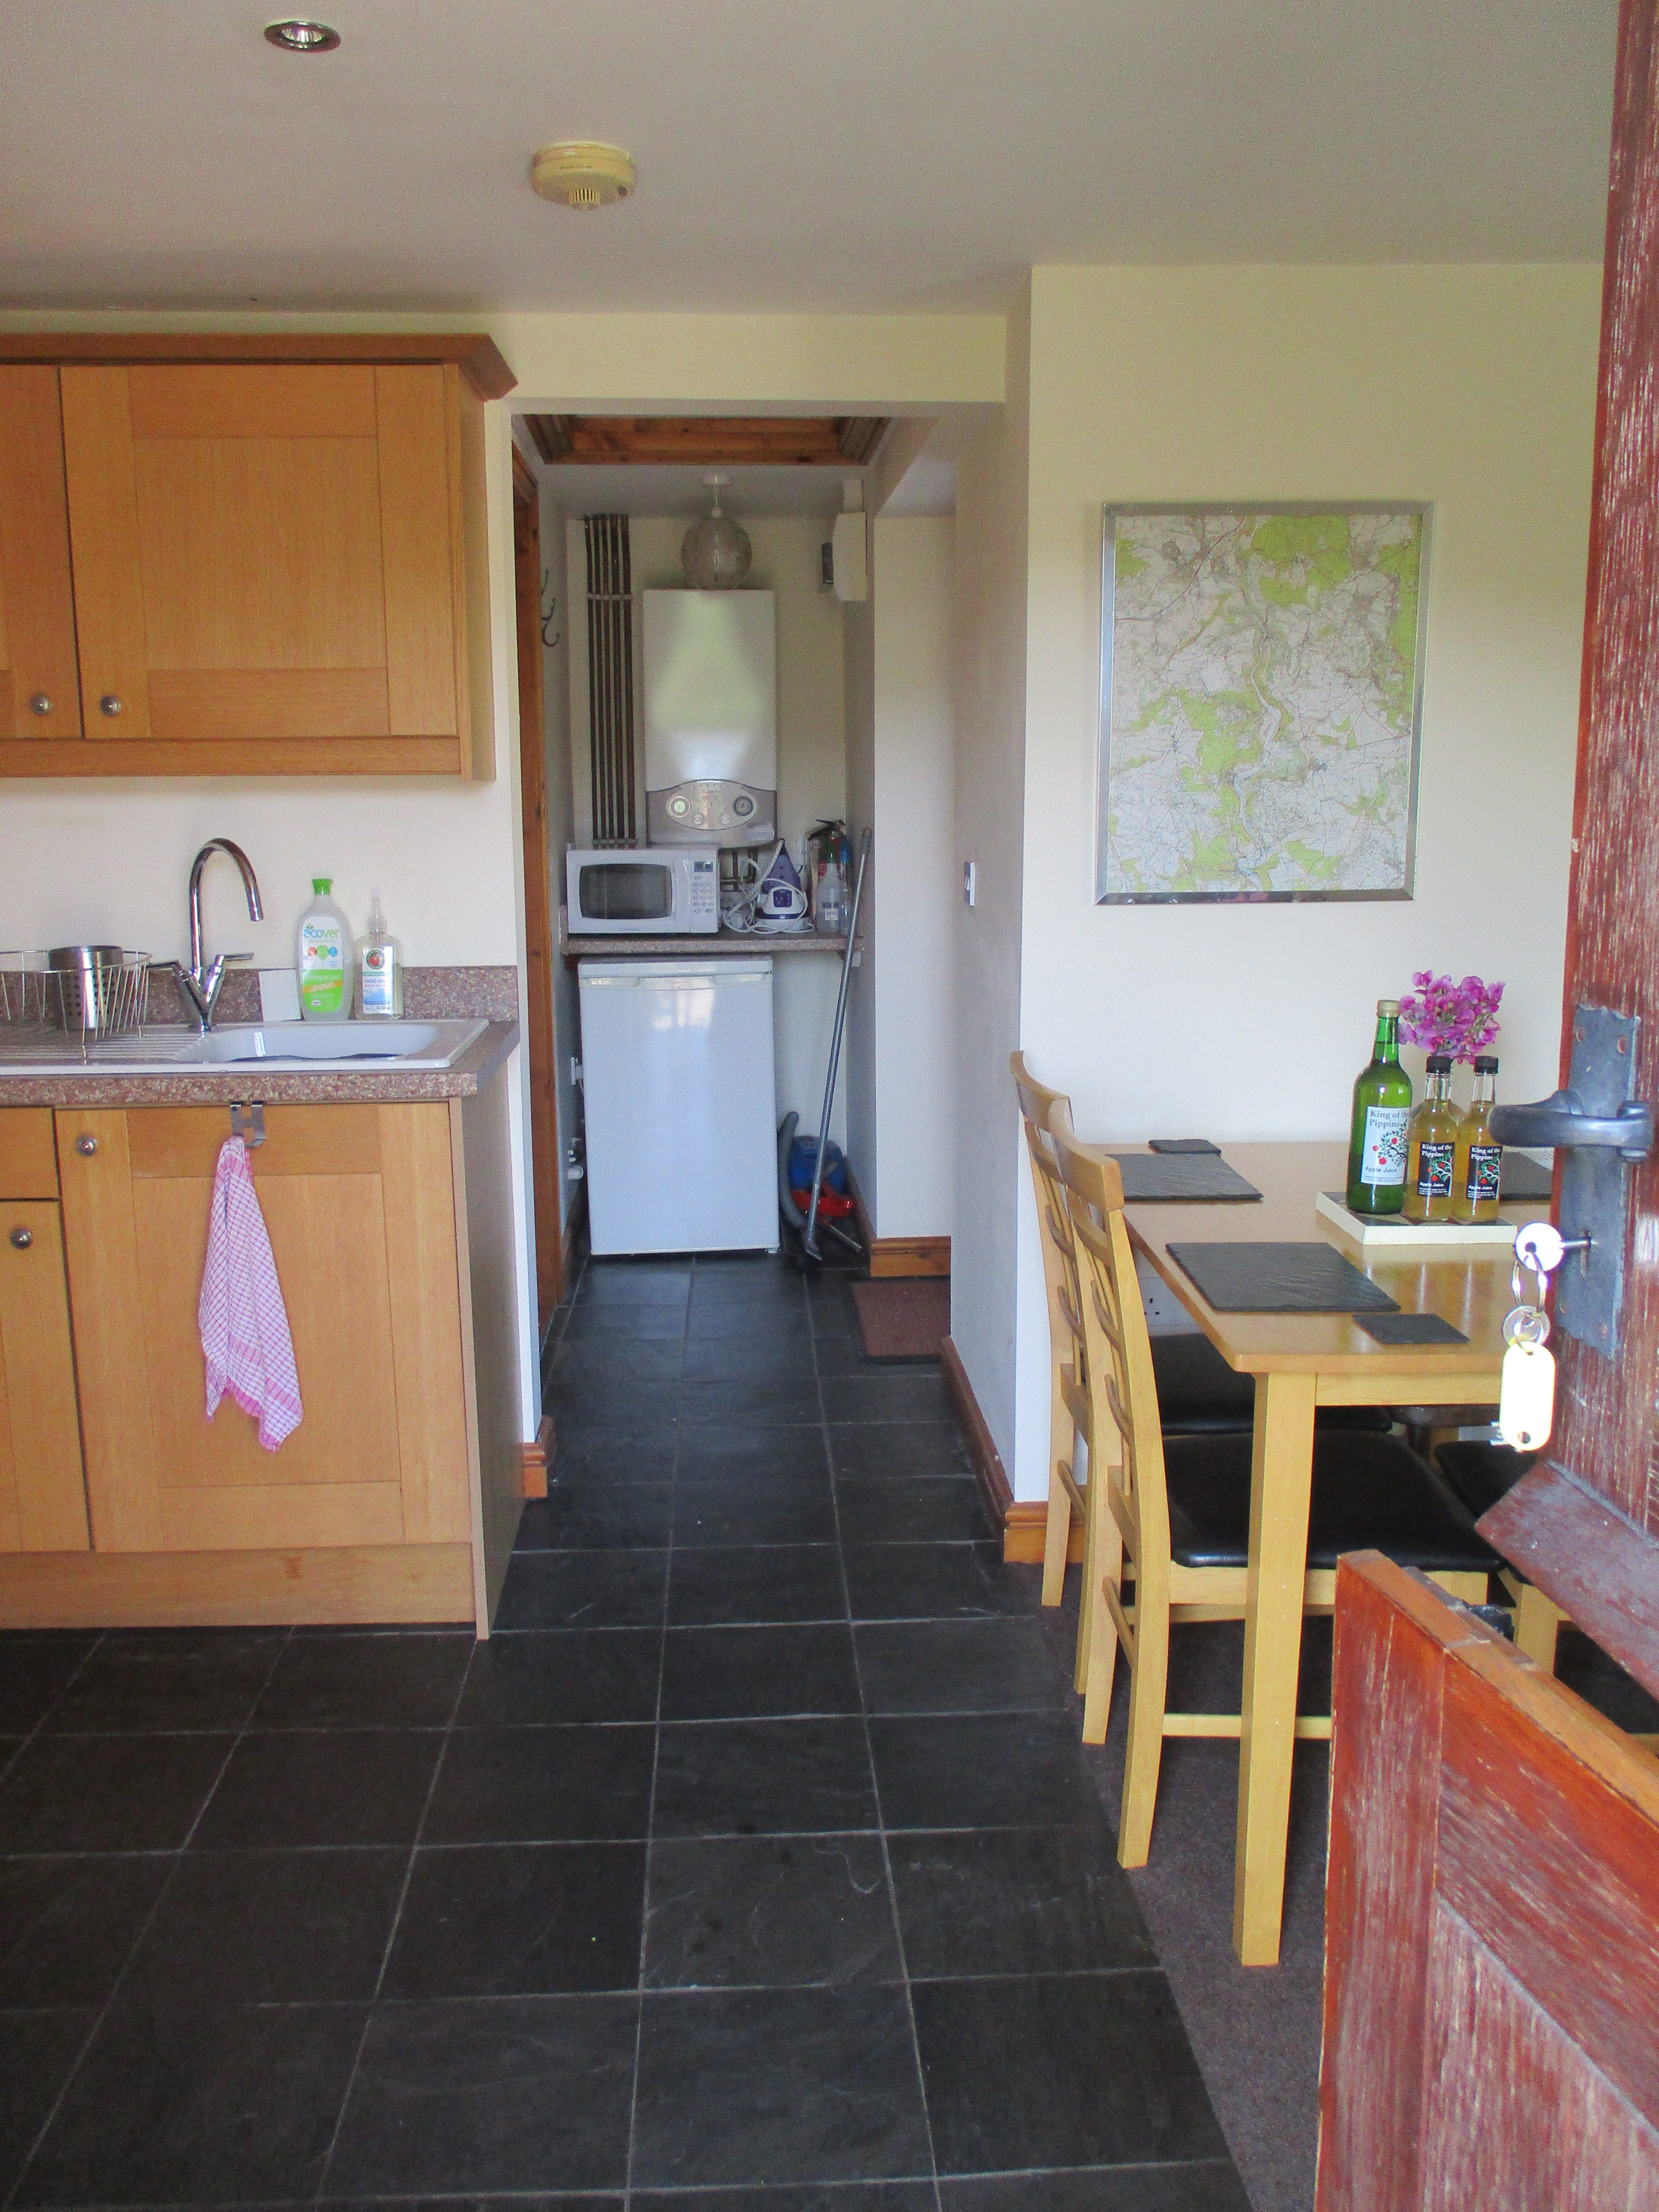 The cottage has a microwave and fridge freezer